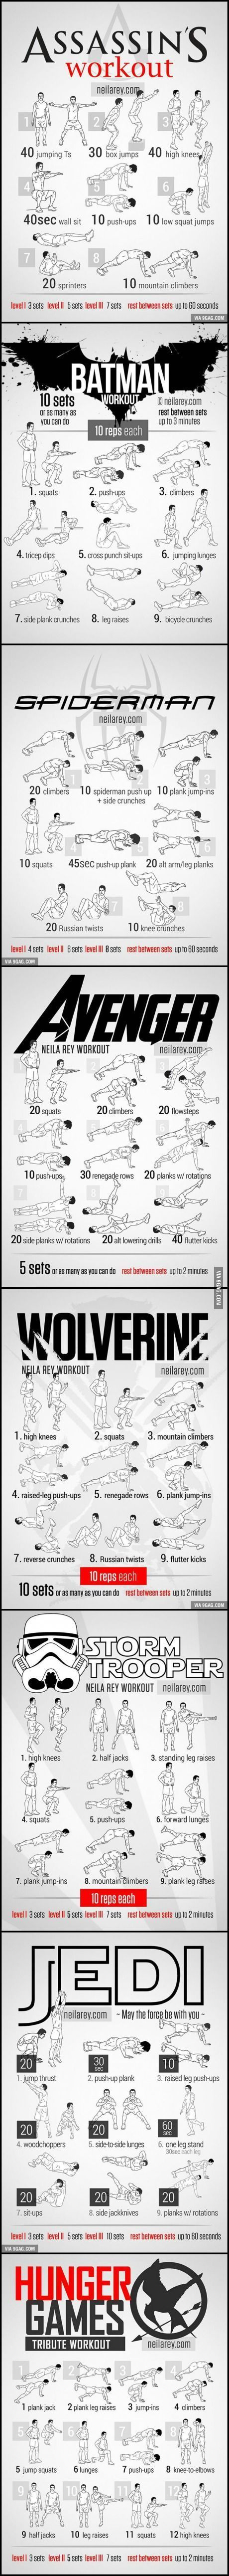 Workout-for-Assassin-Batman-Spiderman-Avenger-Wolv http://amzn.to/2s1pFNY